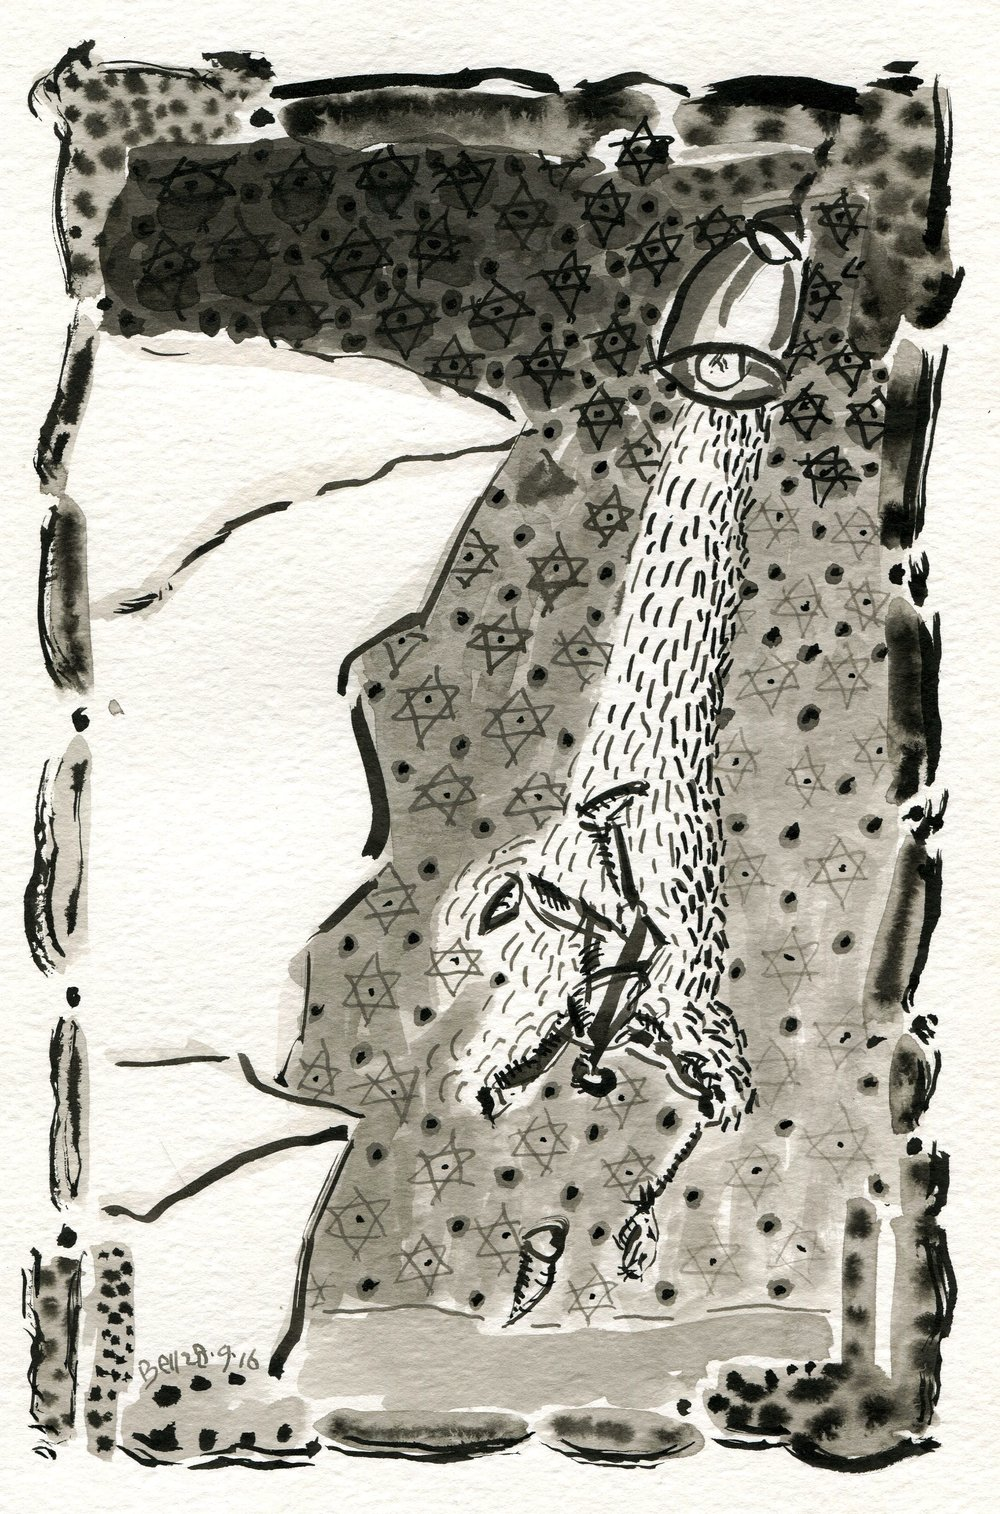 69a Brendan Bell, The Fool Falls, Brush & ink on paper